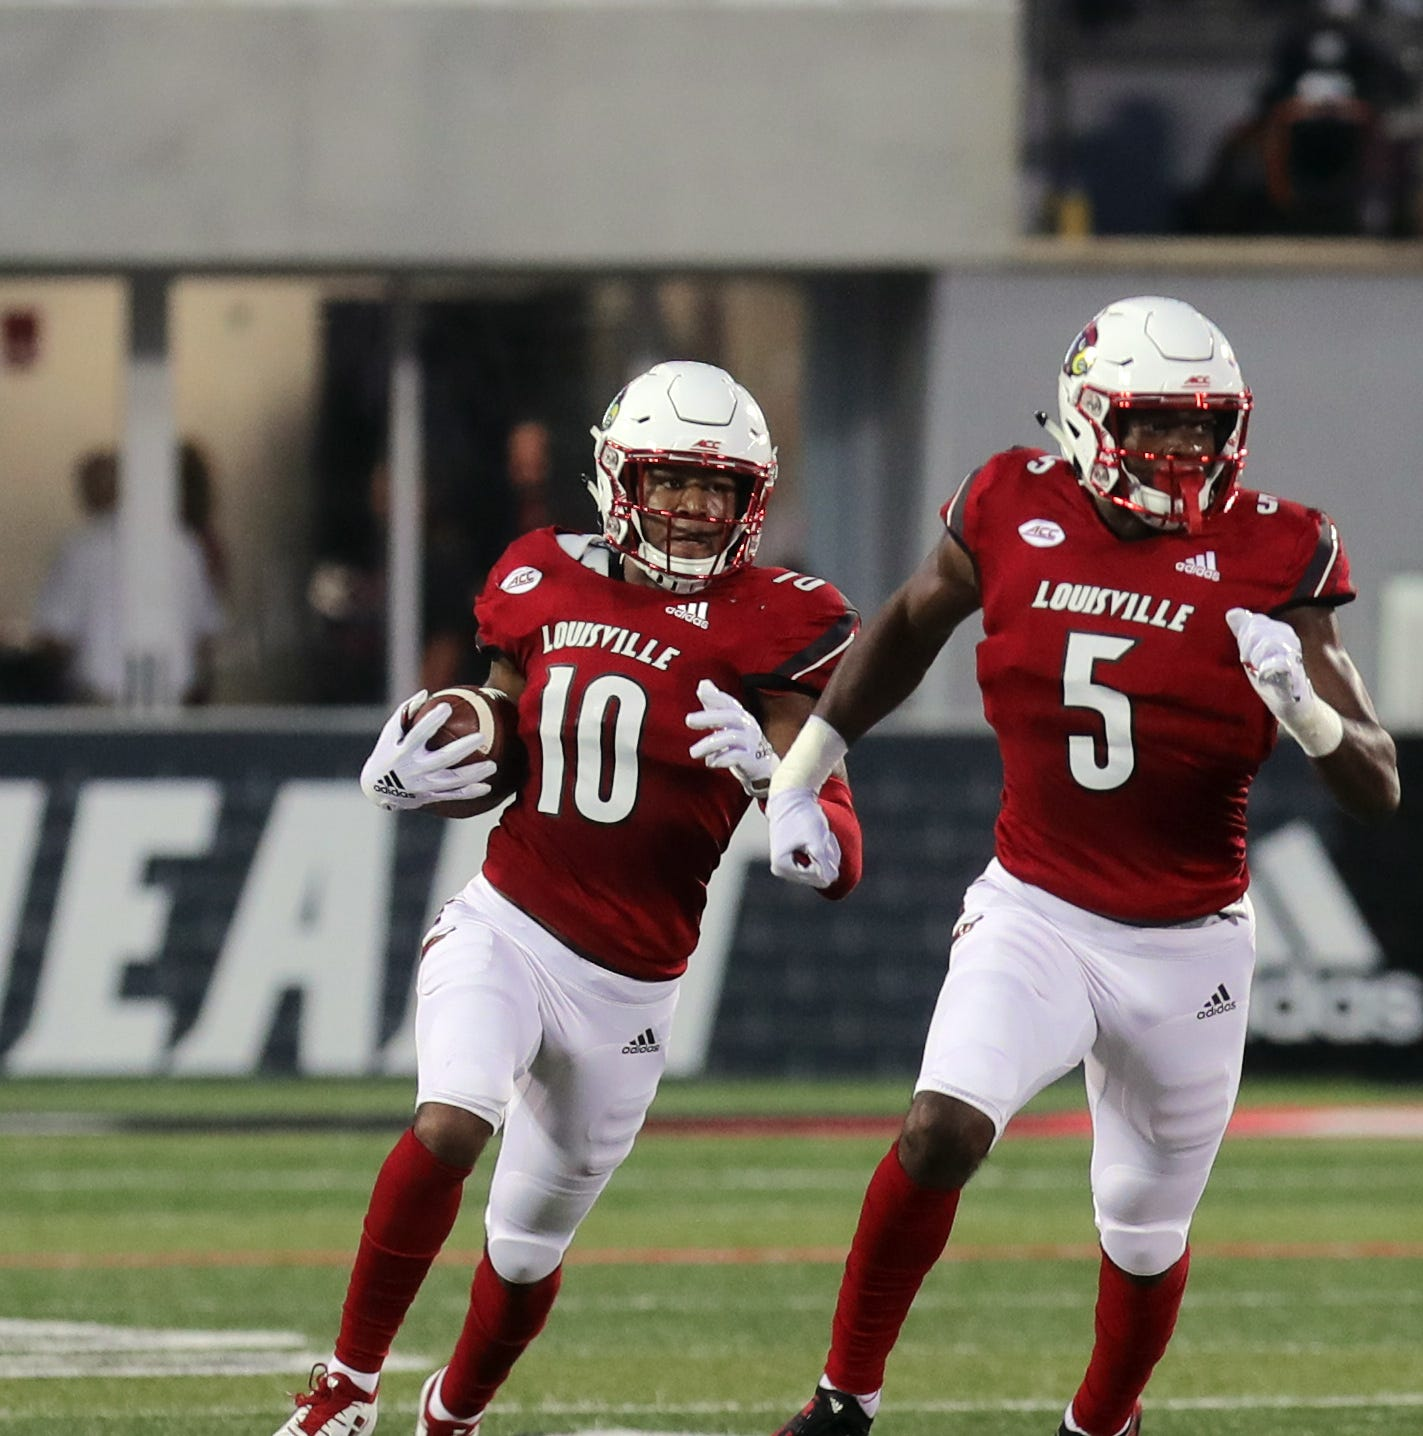 Louisville football missing two starters for Friday's game at Syracuse